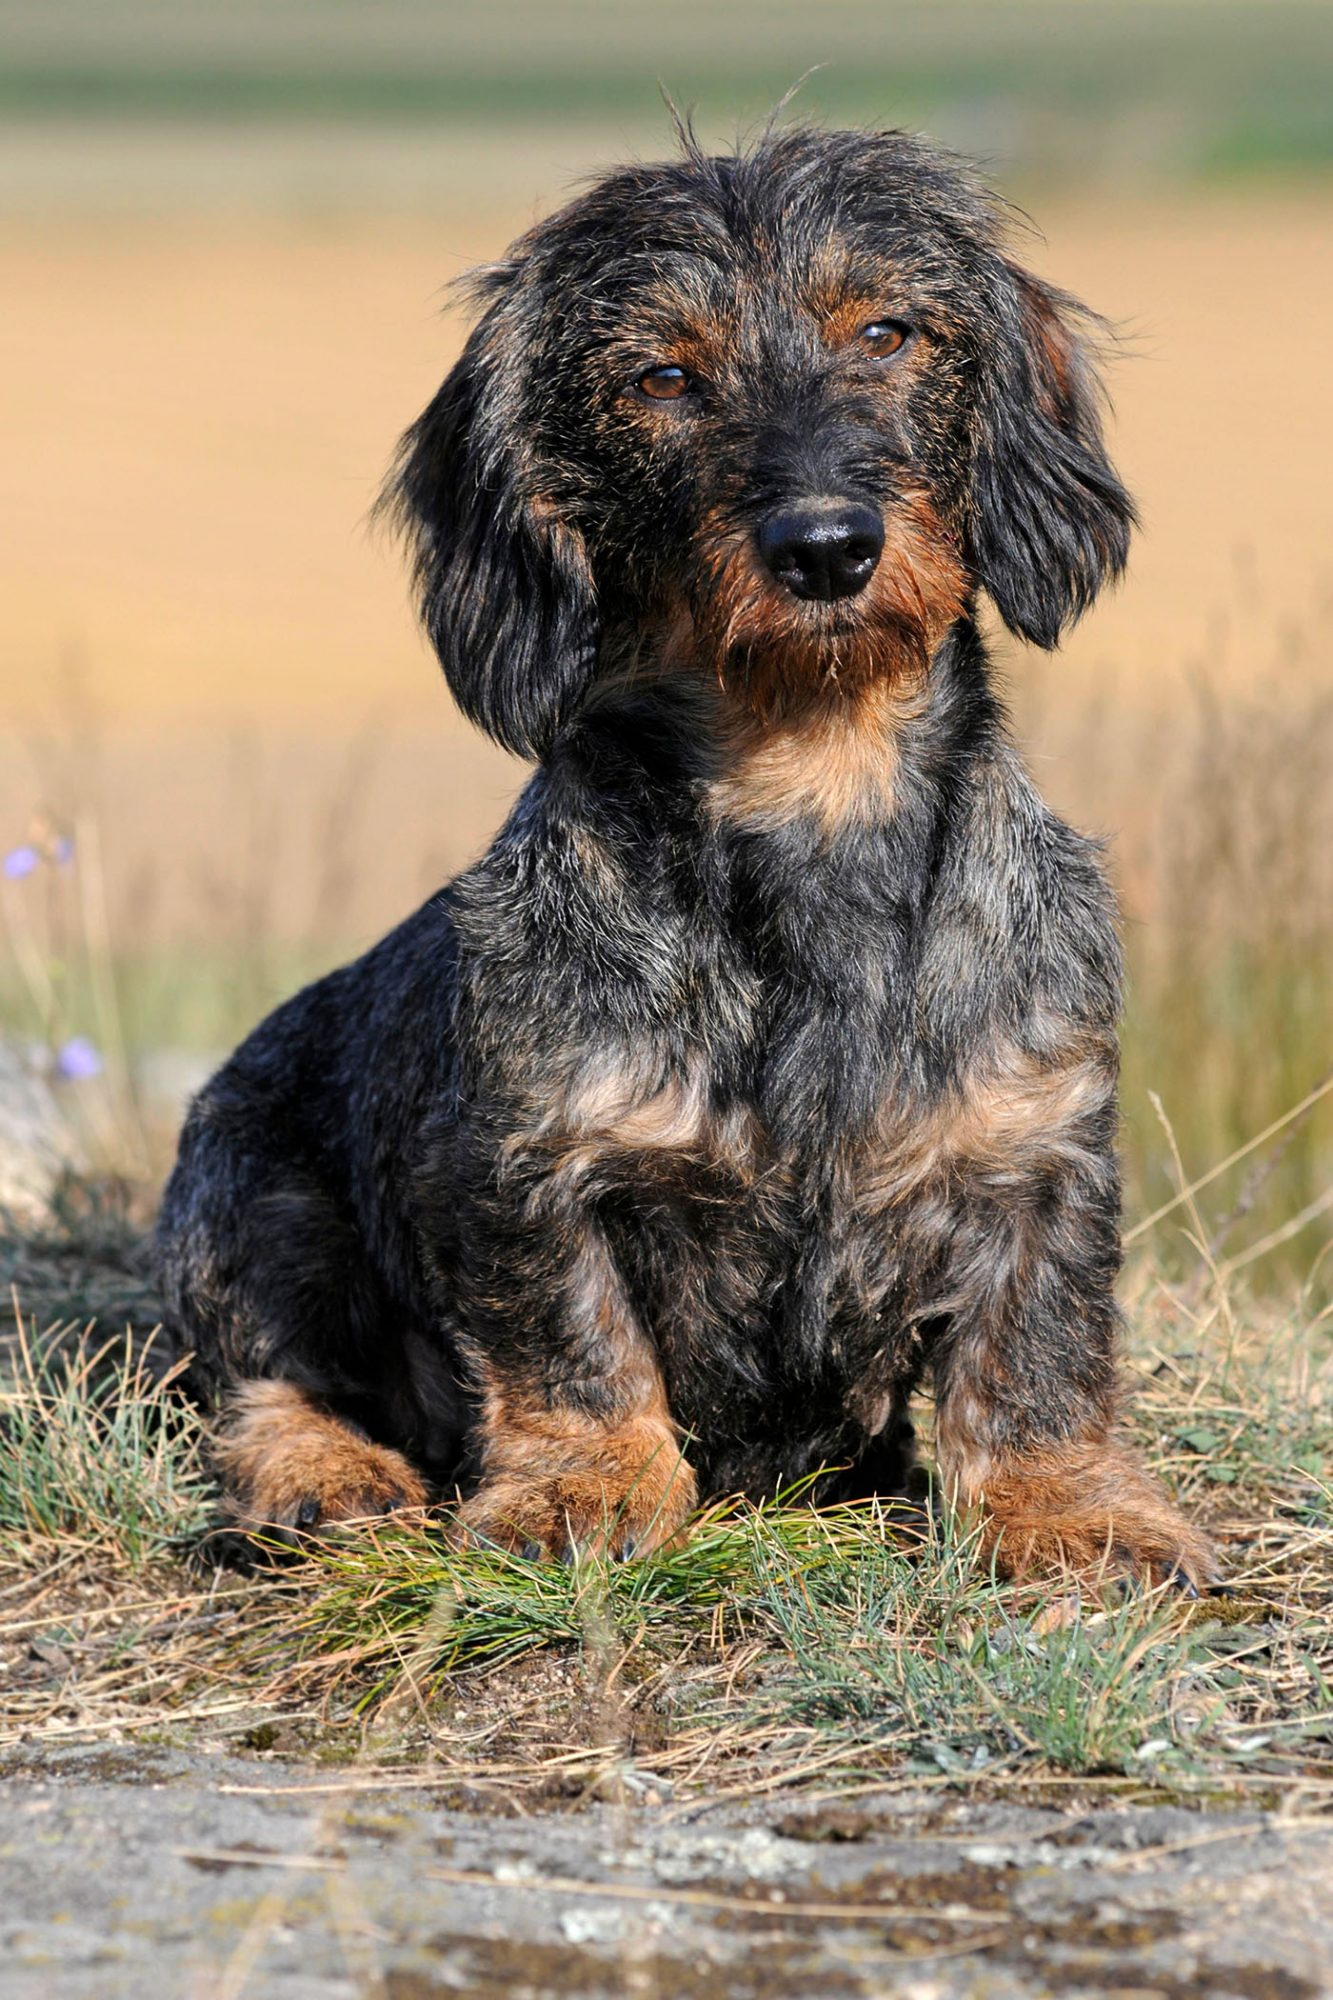 wirehair or rough dachshund